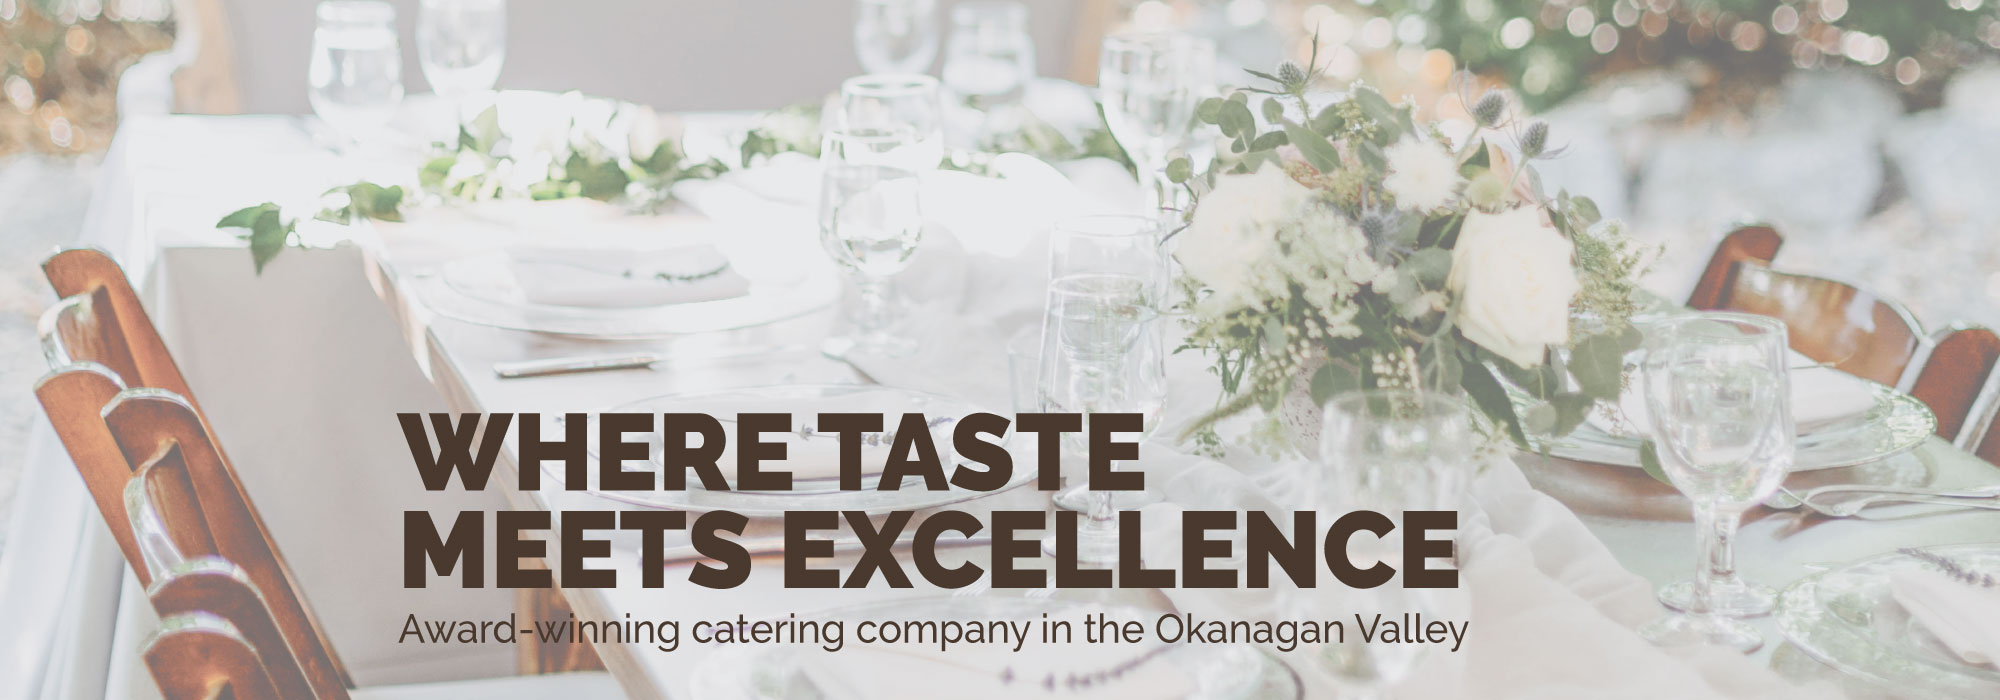 Where Taste Meets Excellence - Banner 1